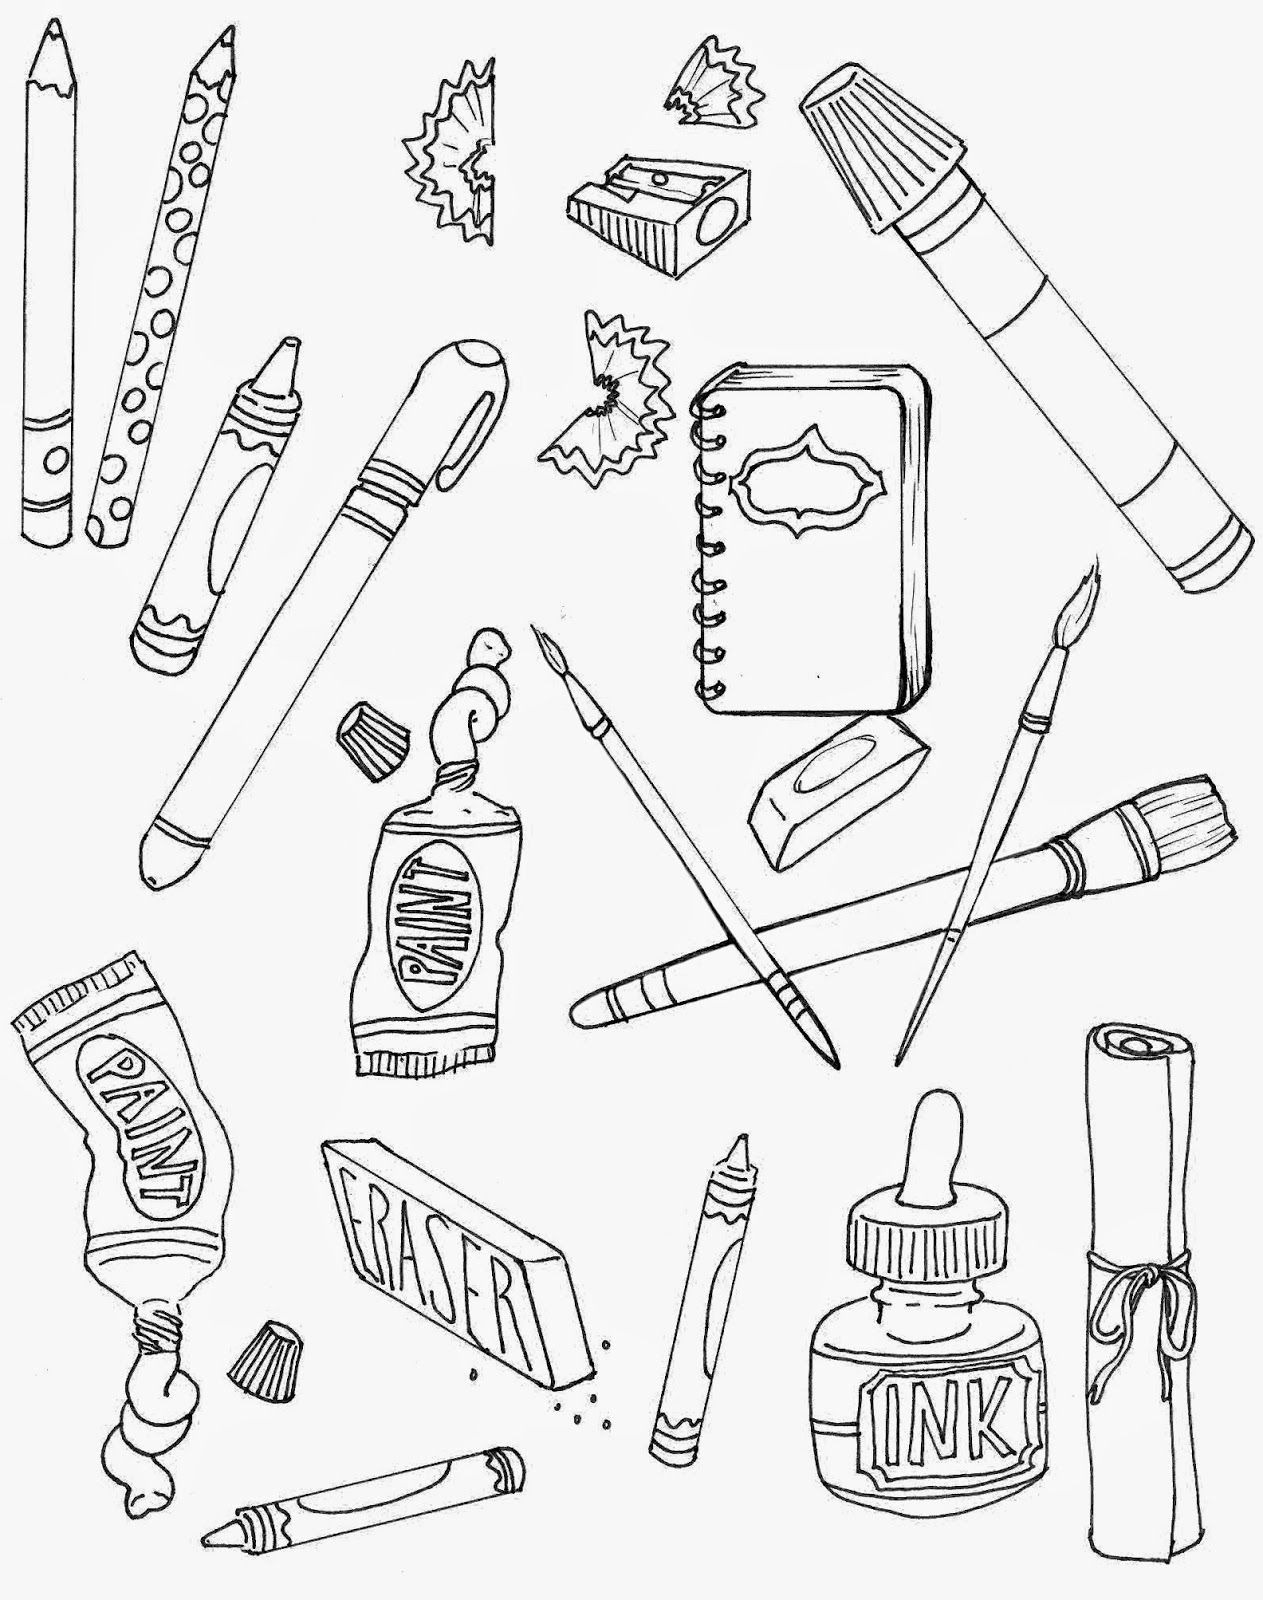 Sunday Fun Art Supplies Coloring Page Art Supplies Drawing Art